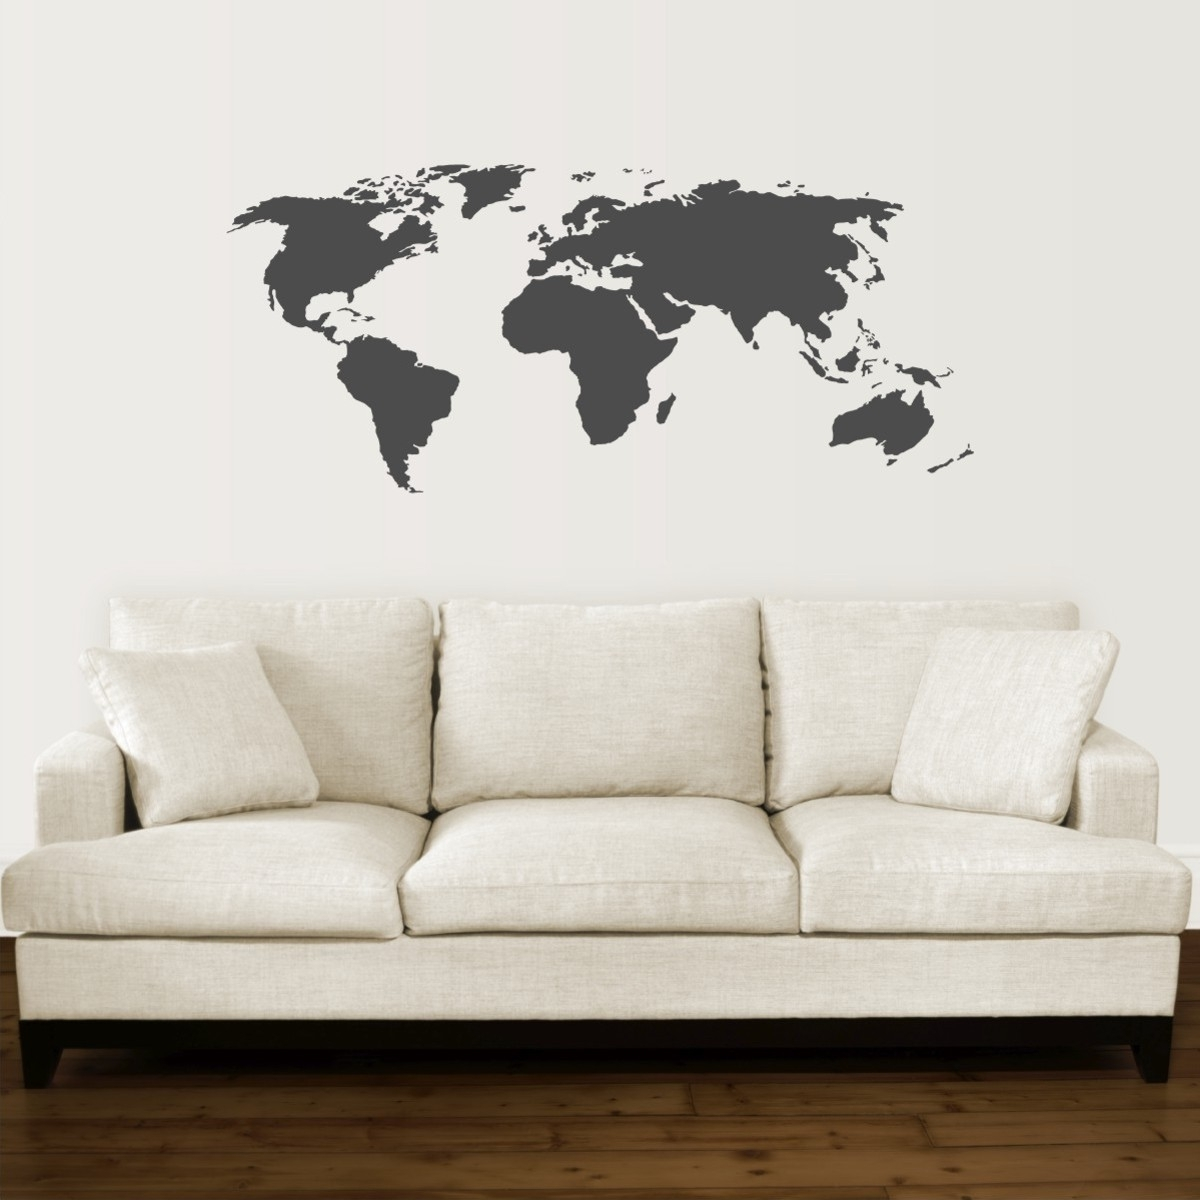 17 Cool Ideas For World Map Wall Art – Live Diy Ideas In 2017 Map Of The World Wall Art (View 1 of 20)